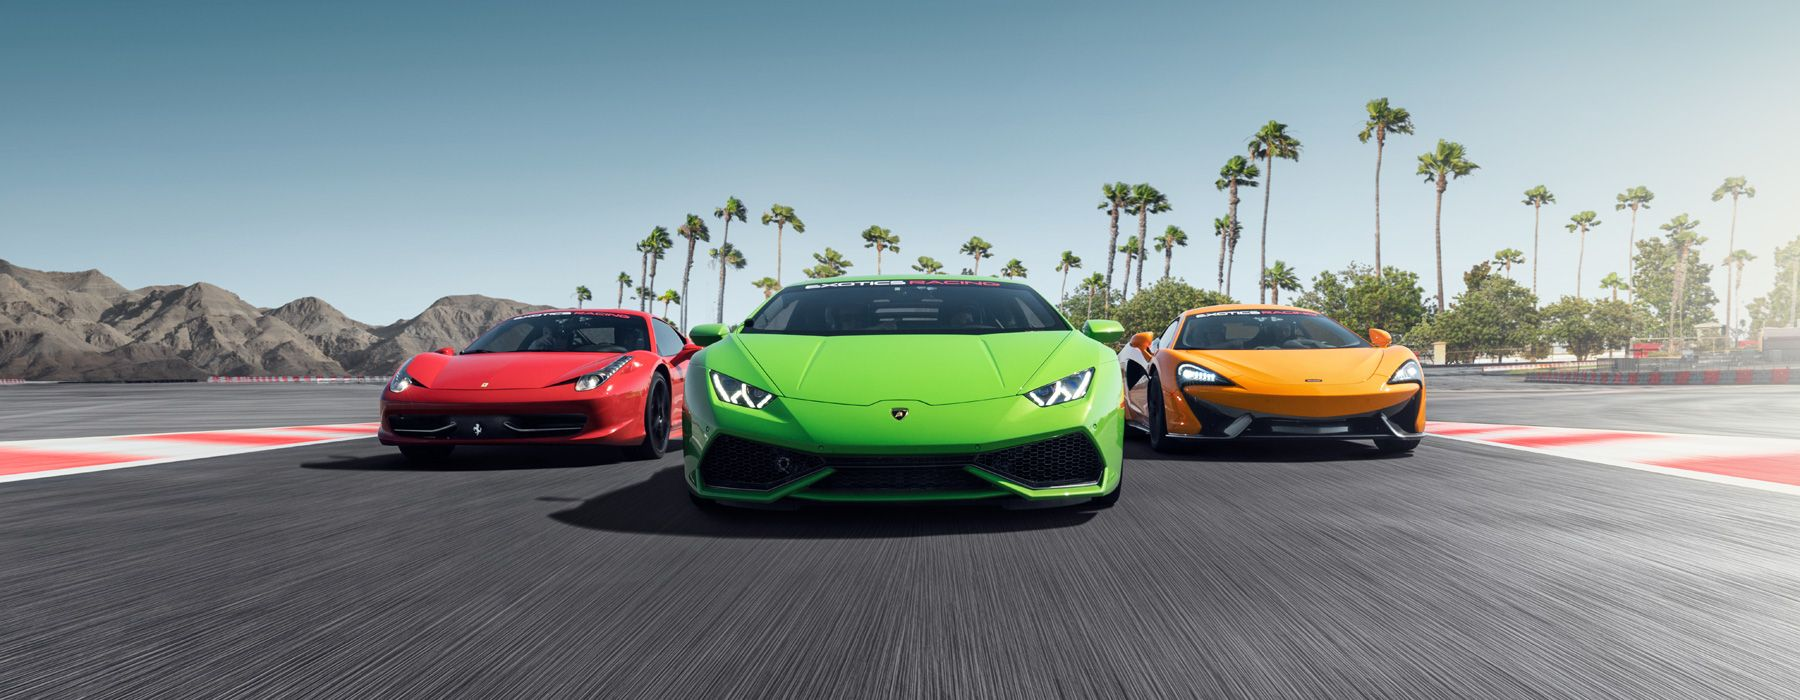 Exotics Racing School The Ultimate Supercar Driving Experience Exotics Racing Search Car Travel Supercar Driving Experience San Diego Travel